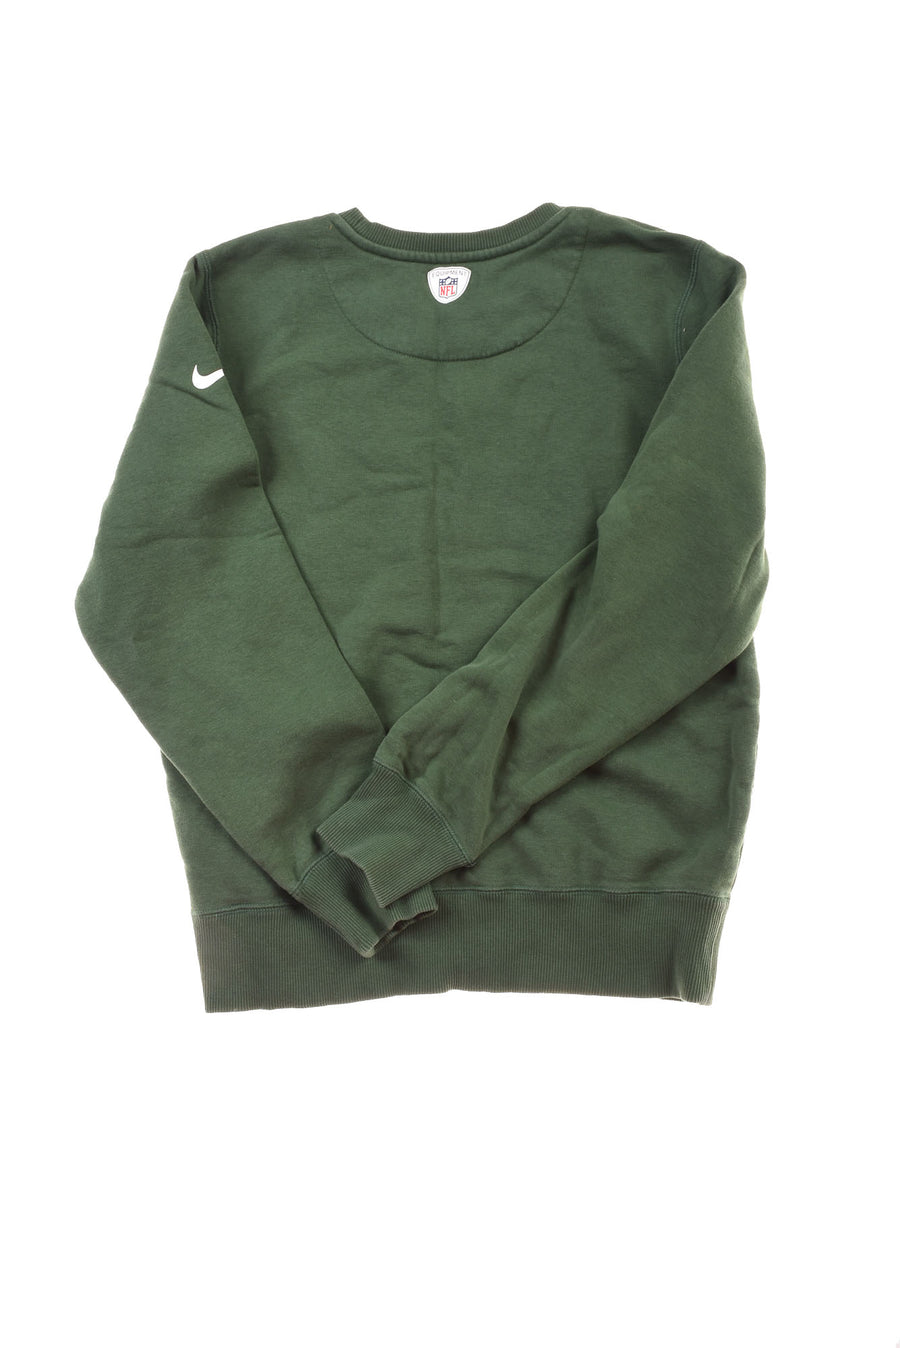 Men's New York Jets Sweatshirt By Nike